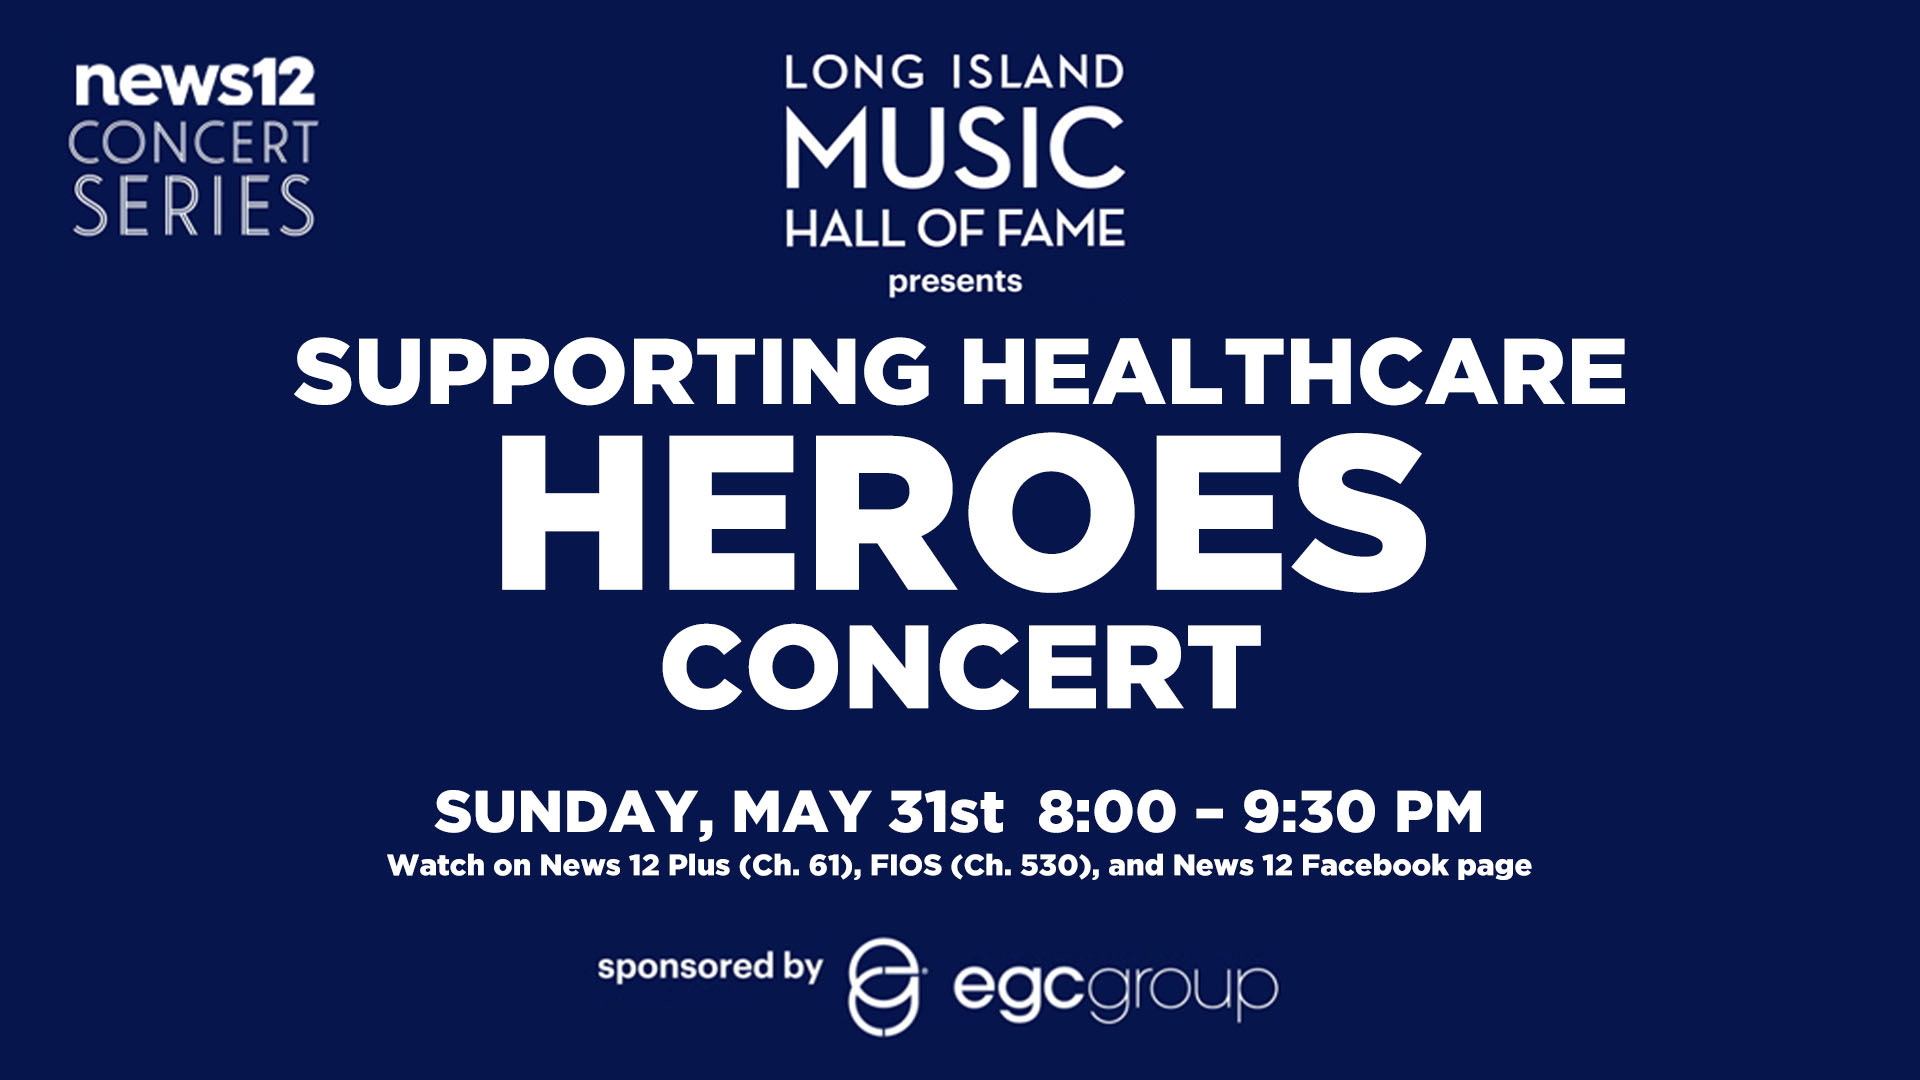 Supporting Healthcare Heroes Concert on May 31st- Click for details